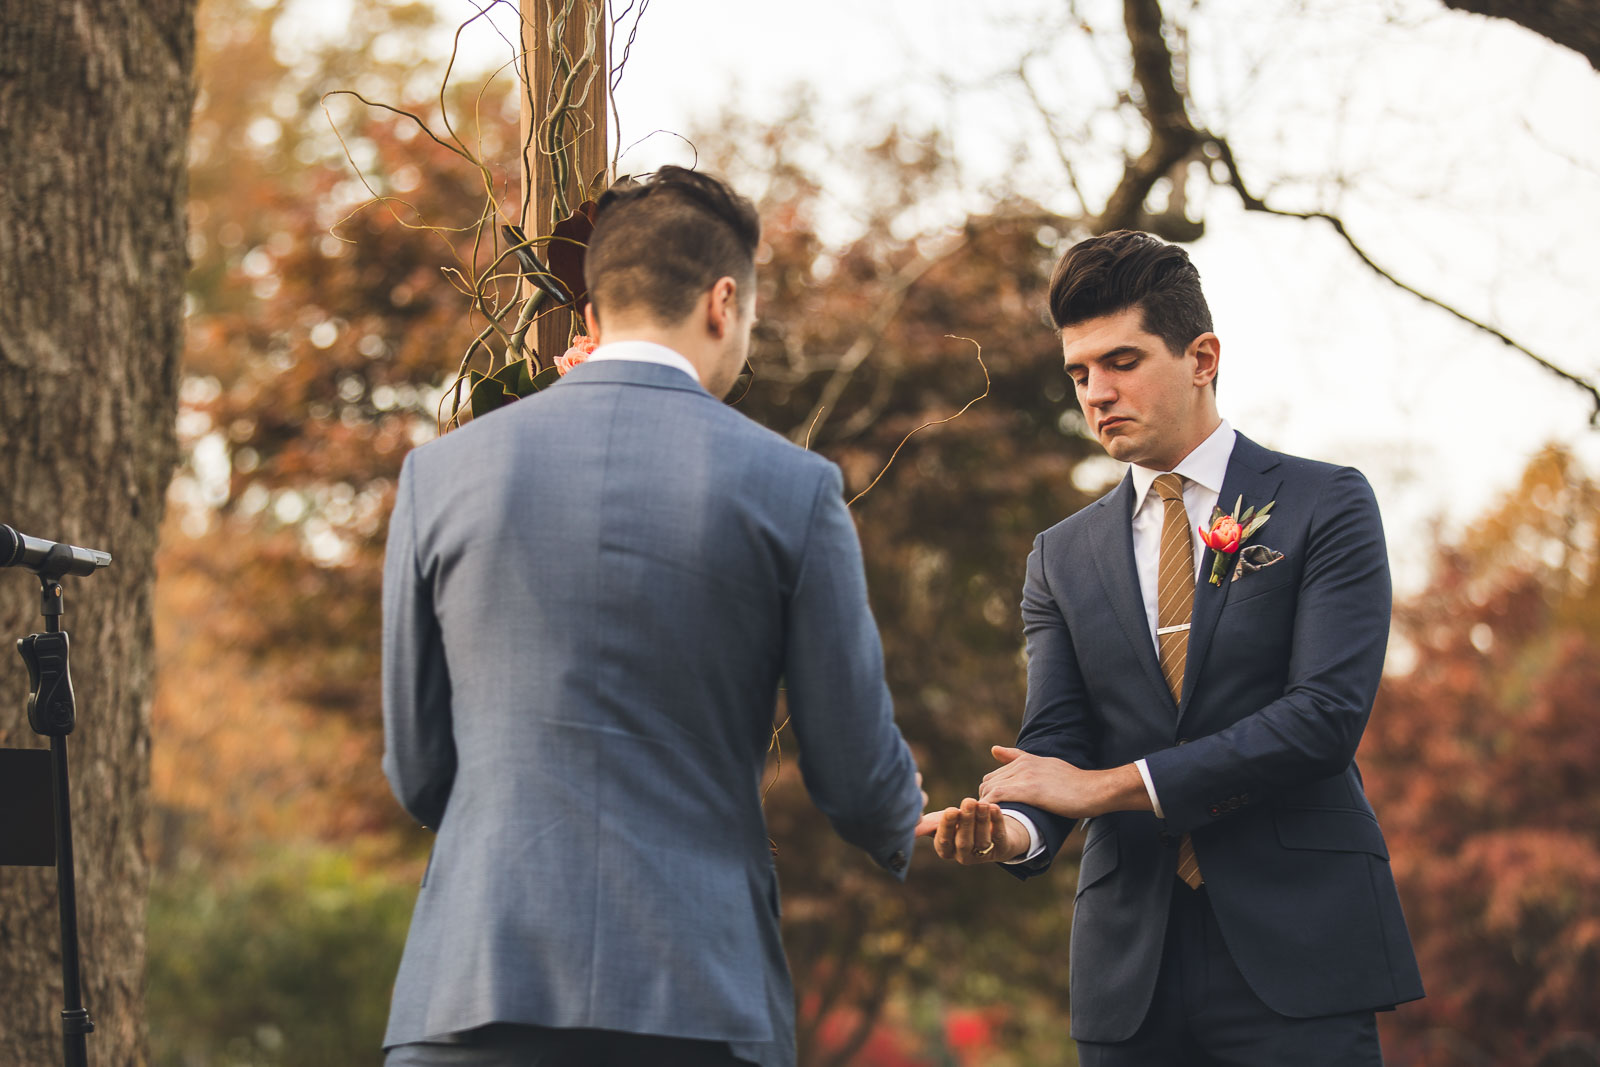 Groom gets rings from Brother